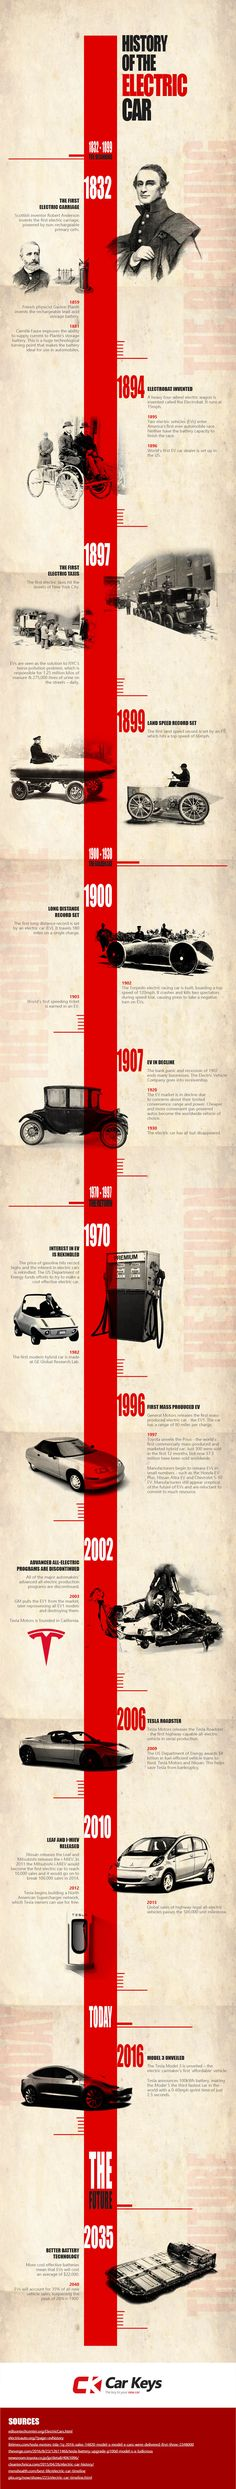 To check out Tesla Motors and the history of the electric car, visit: https://evannex.com/blogs/news/infographic-tesla-motors-and-the-history-of-the-electric-car